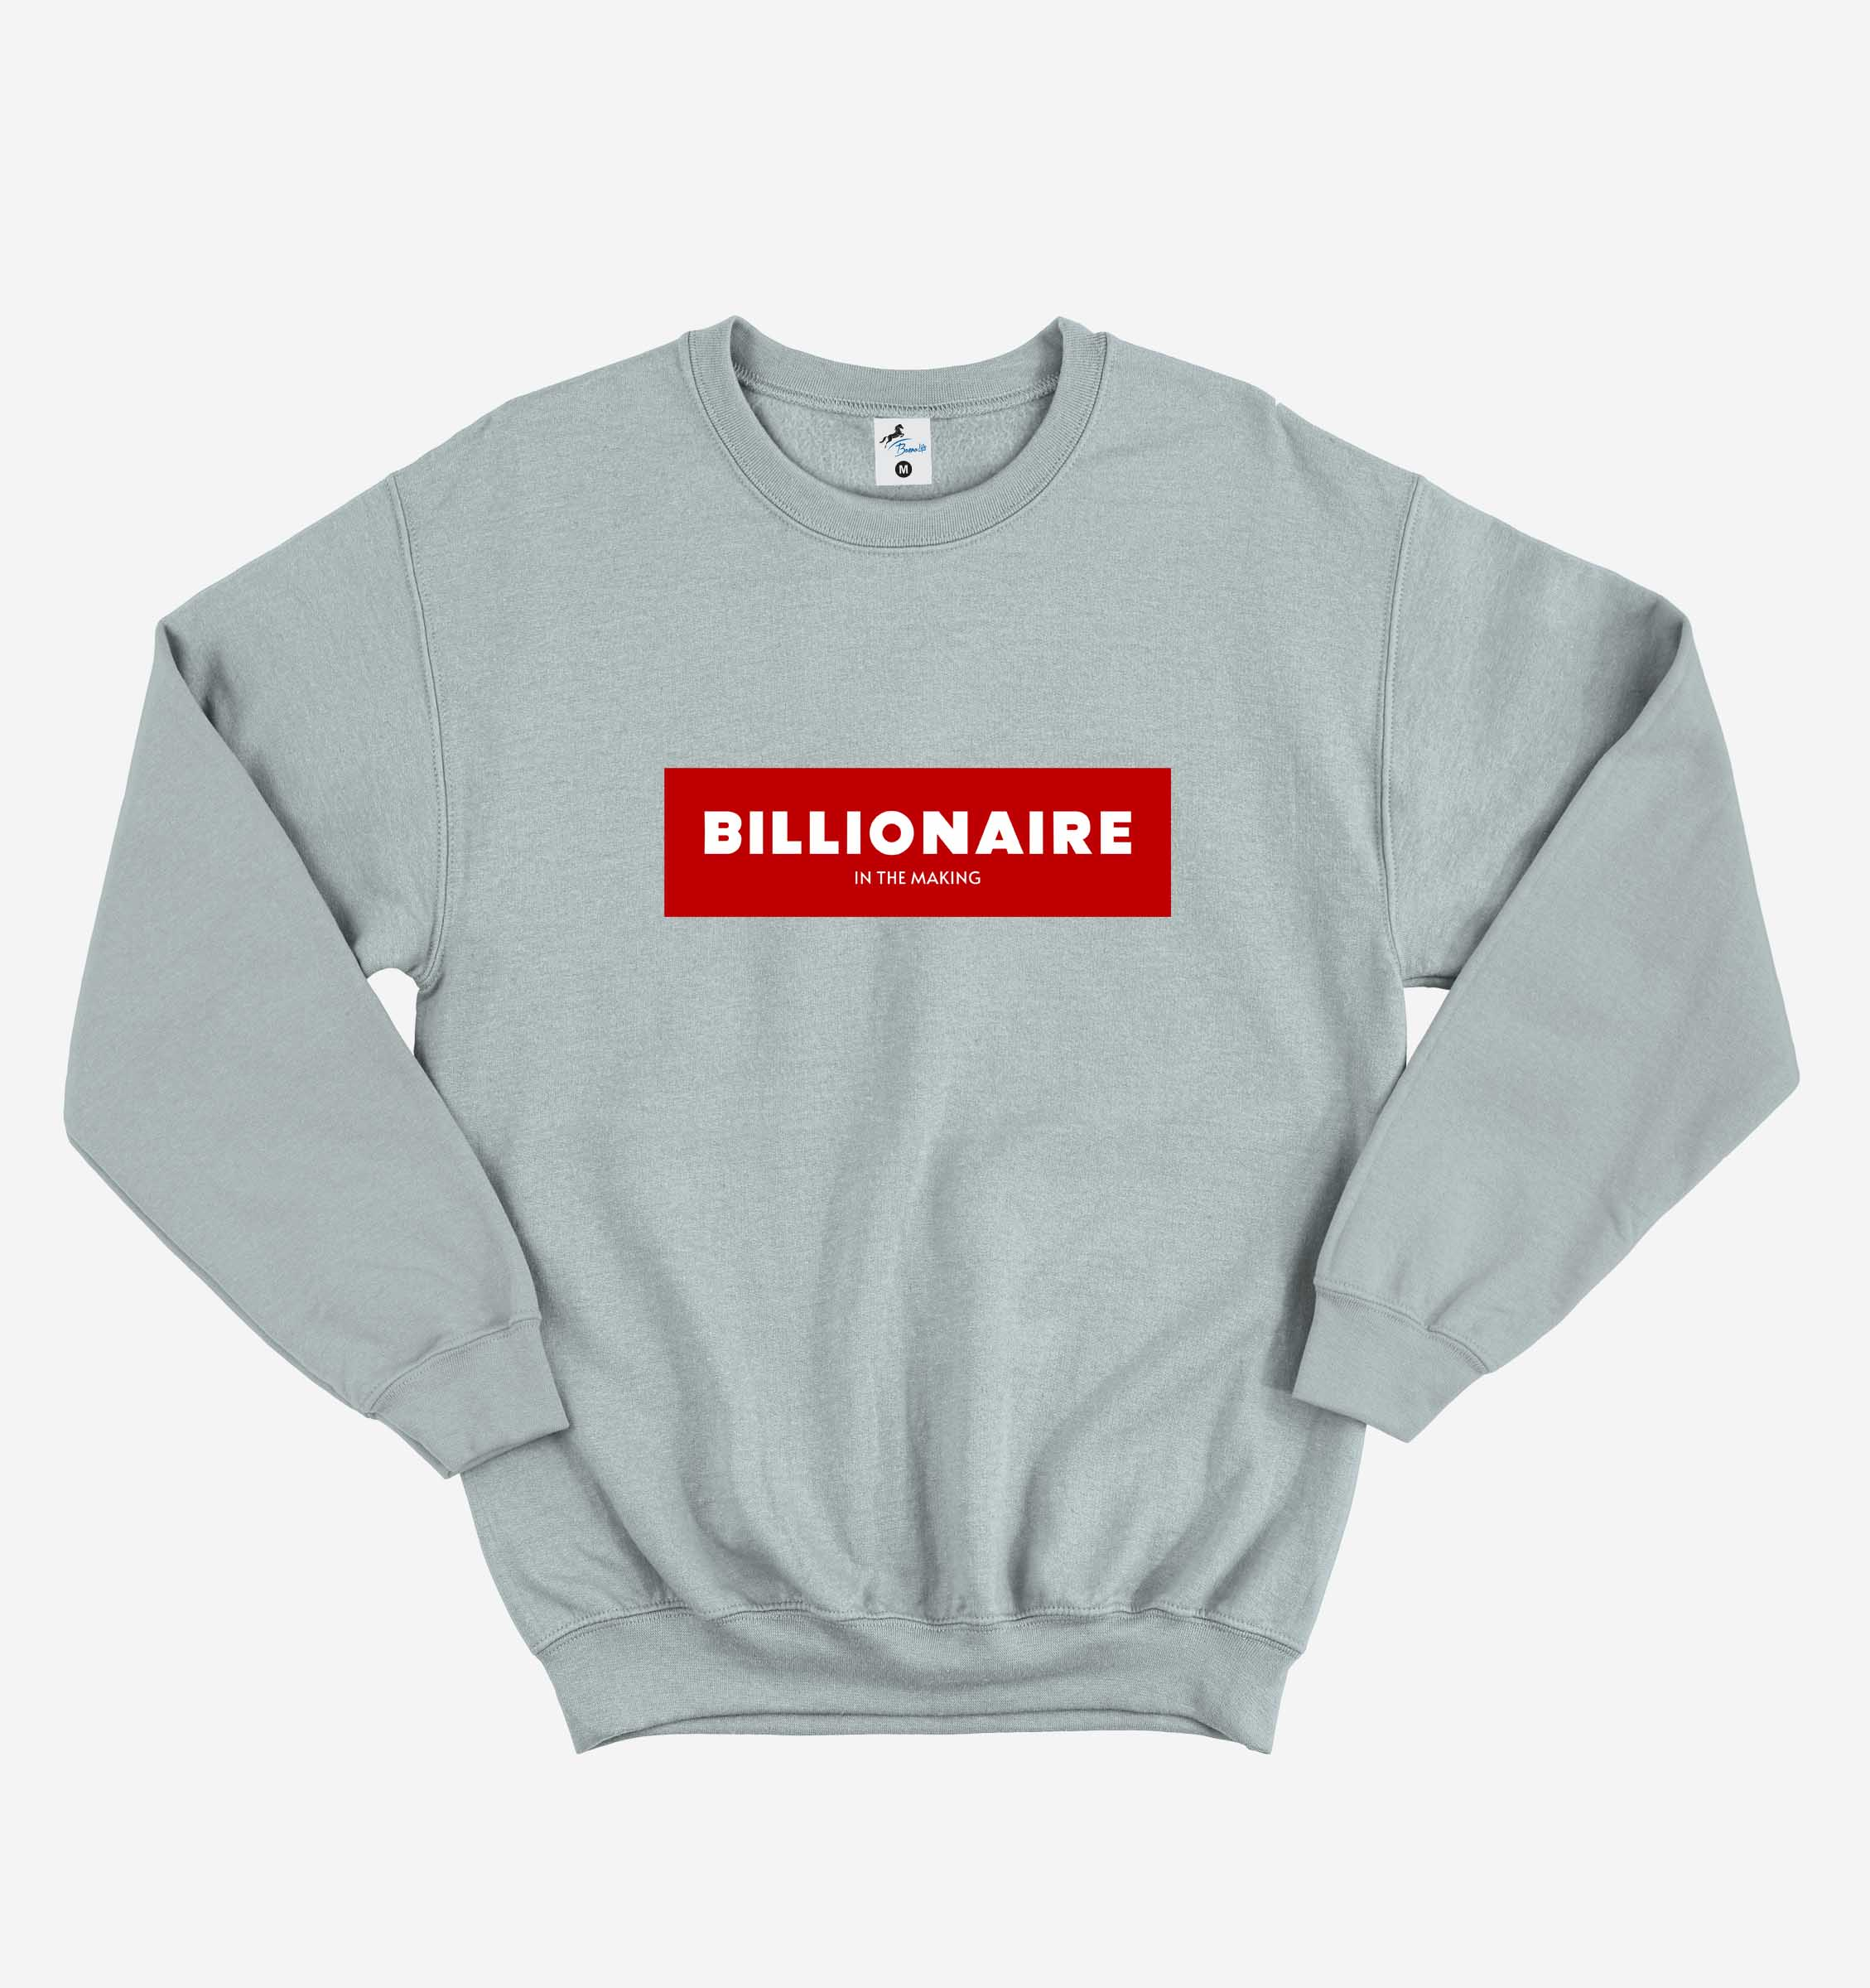 BILLIONAIRE GRAY SWEATSHIRT